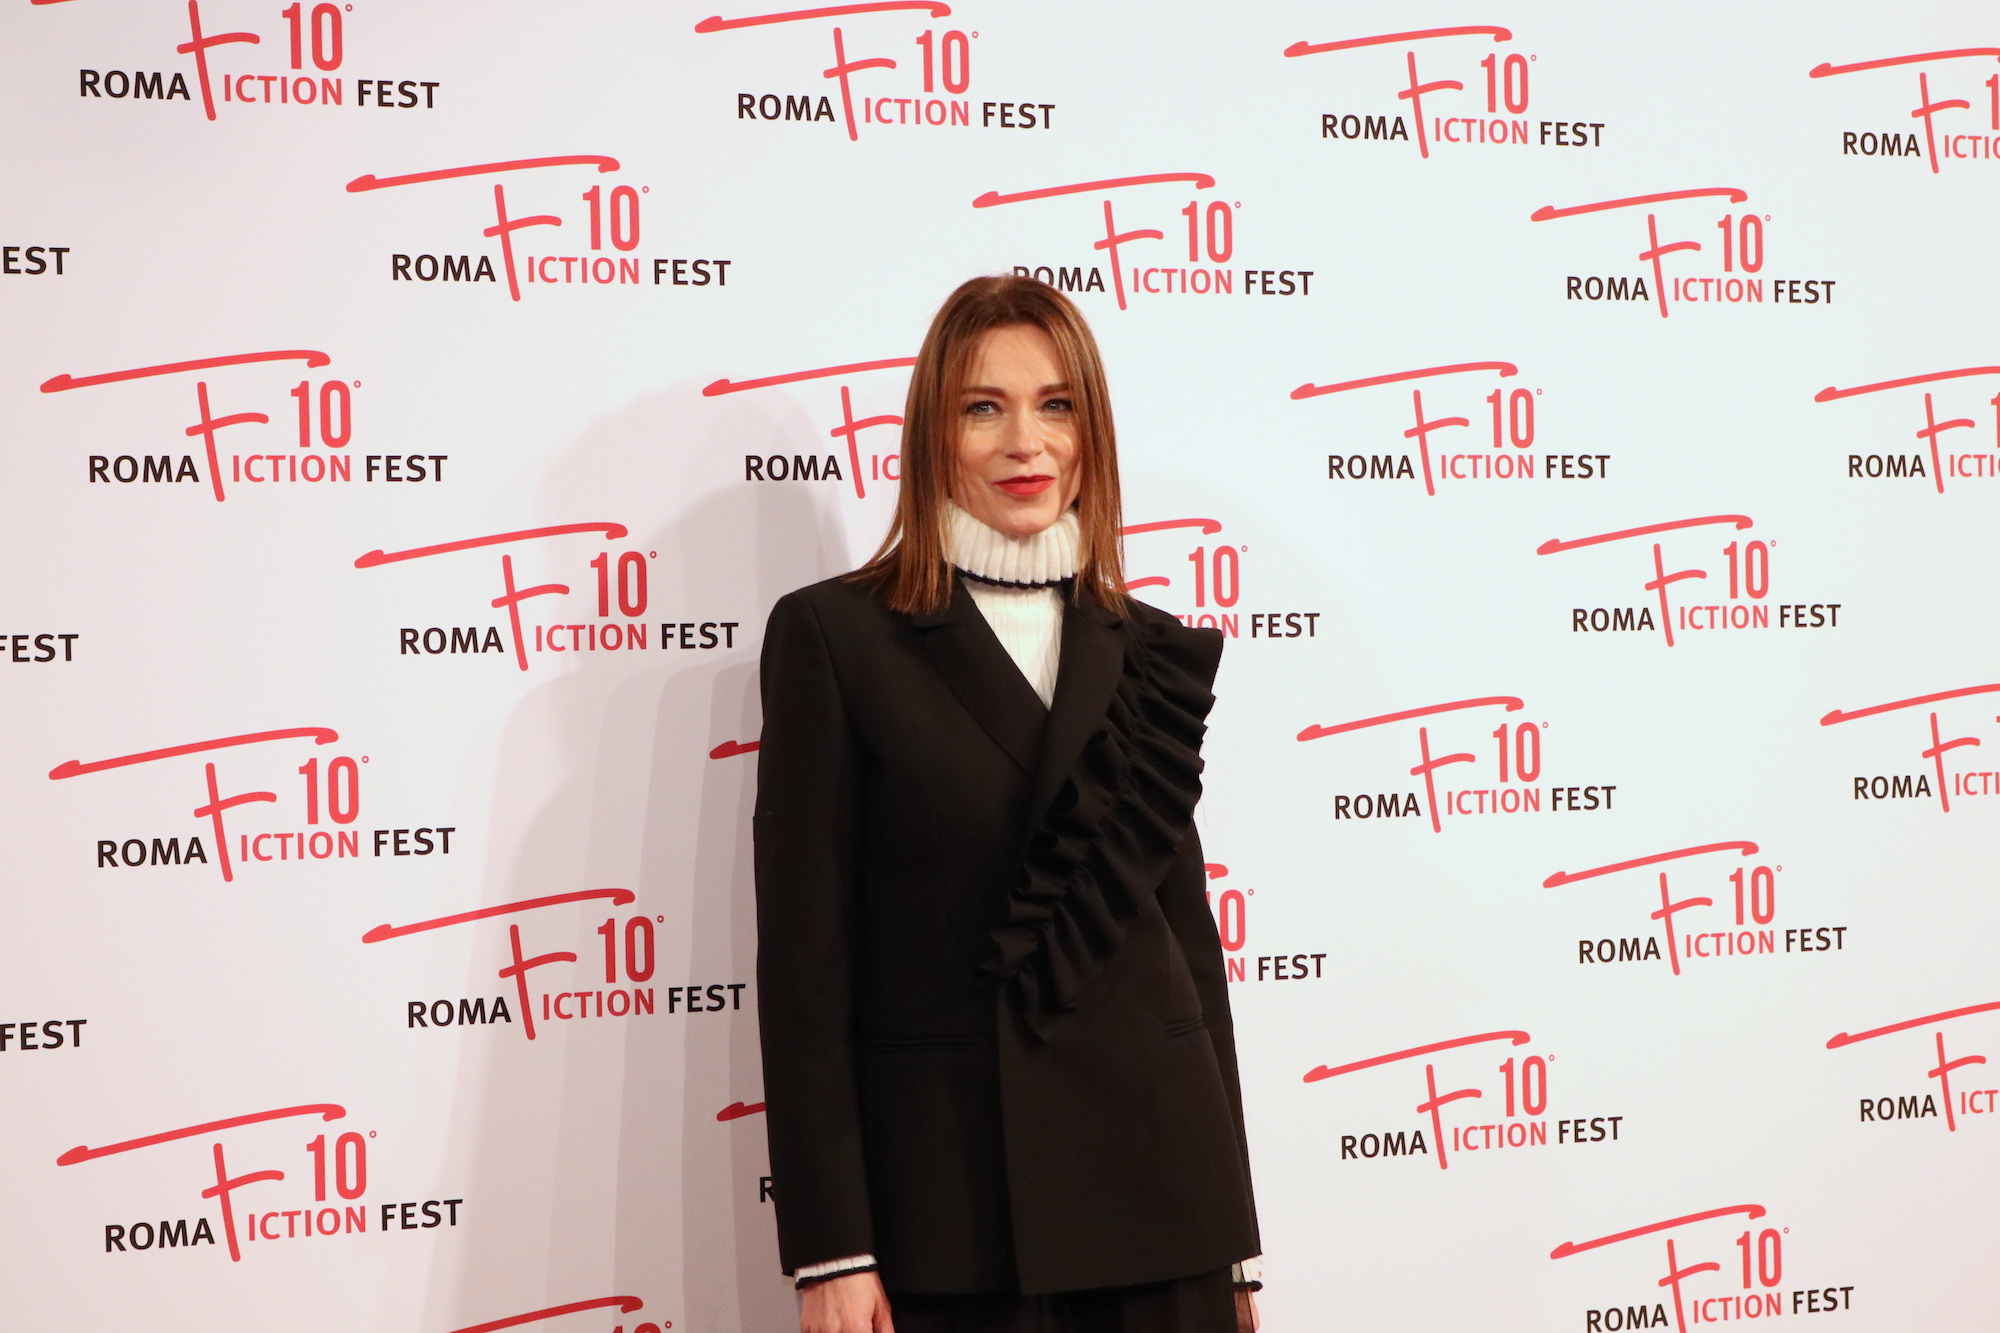 Roma Fiction Fest 2016: Stefania Rocca sul red carpet di Di padre in figlia